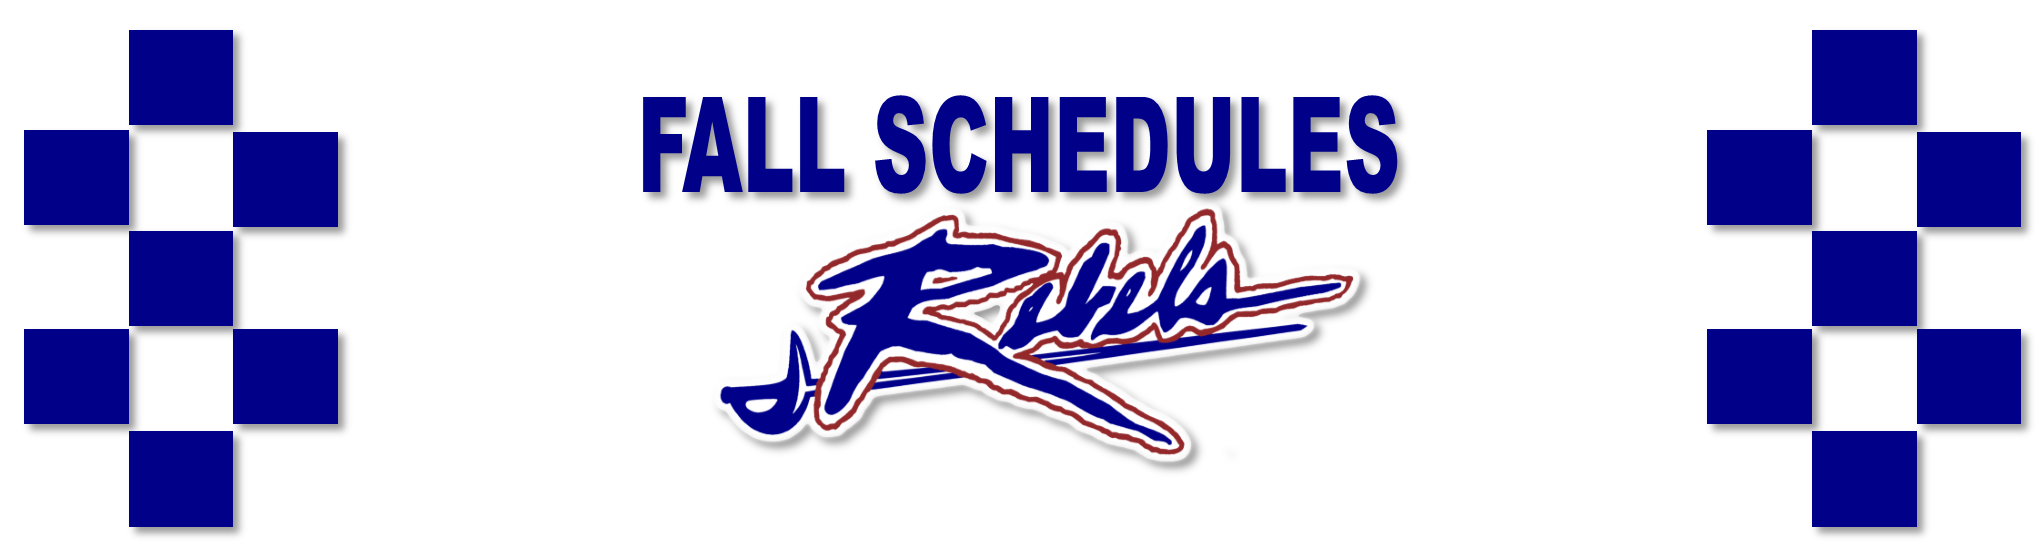 2019 Fall Schedules Released!